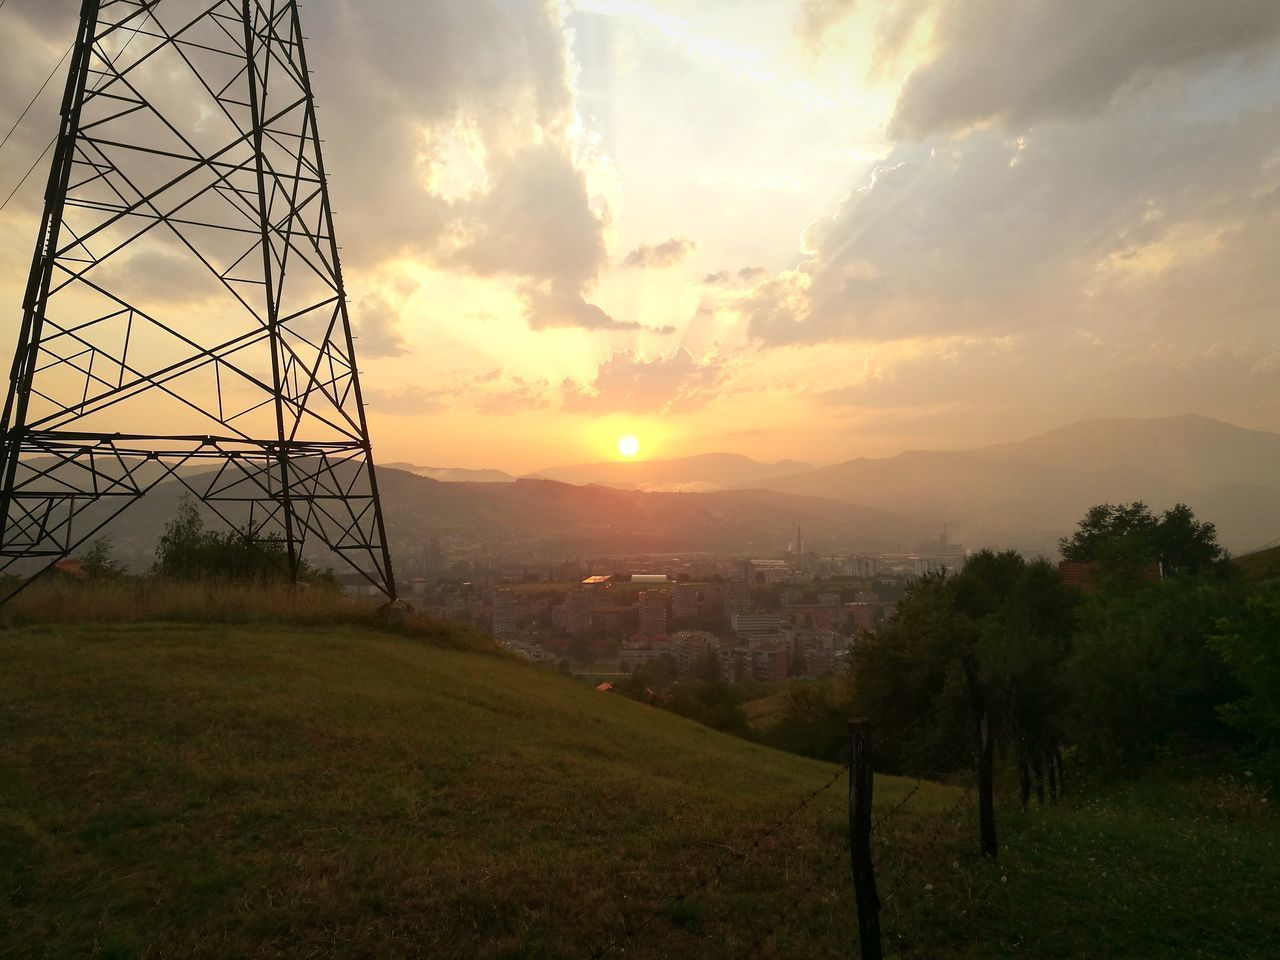 sunset, sky, architecture, built structure, no people, landscape, nature, outdoors, electricity pylon, grass, city, beauty in nature, tree, day